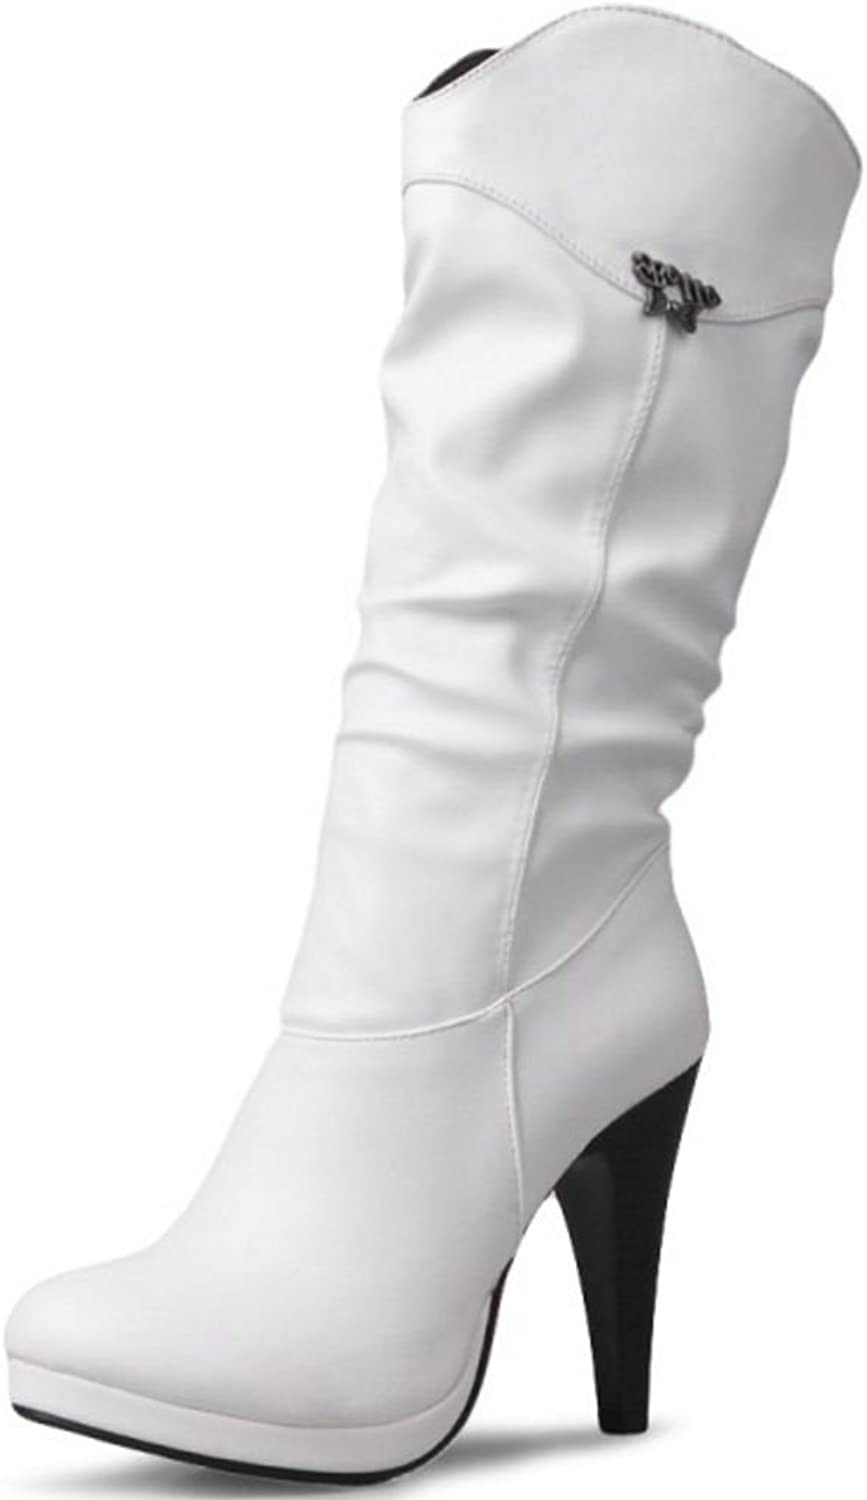 KemeKiss Women's Fashion Slouch Half Boots Stiletto High Heels for Party